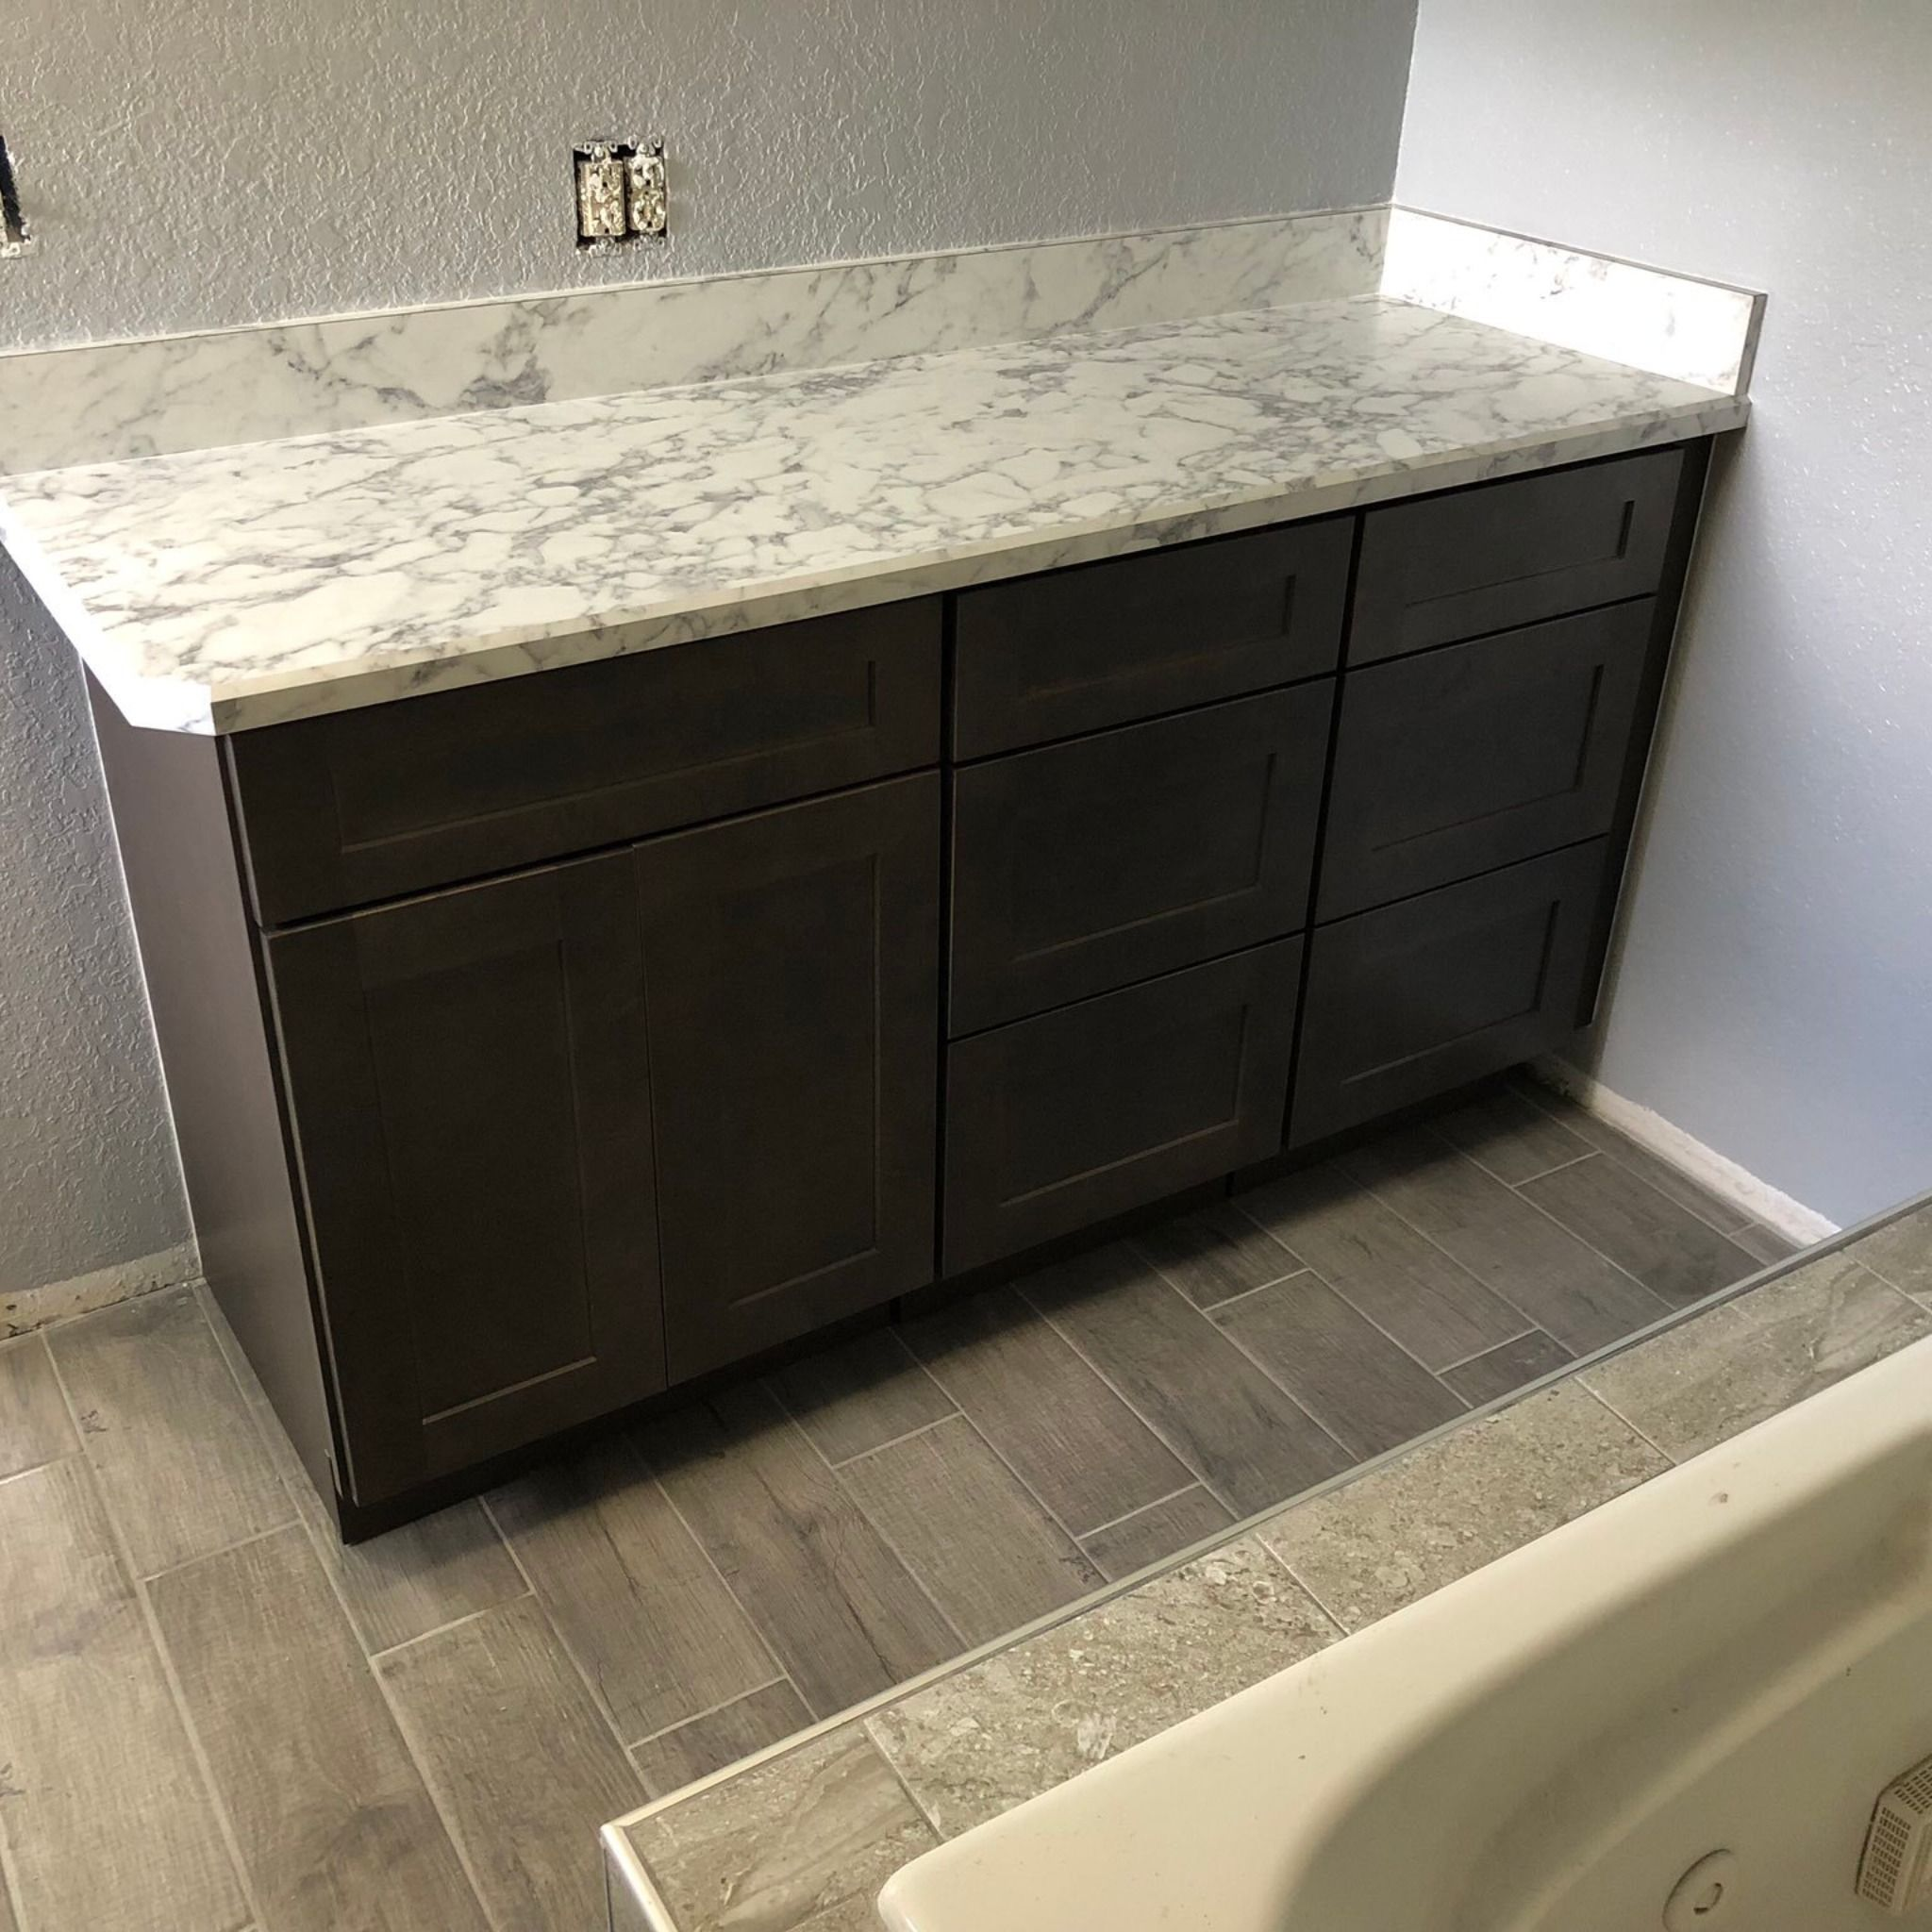 Closetrodz On Laminate Countertops Vanity Laminate Counter